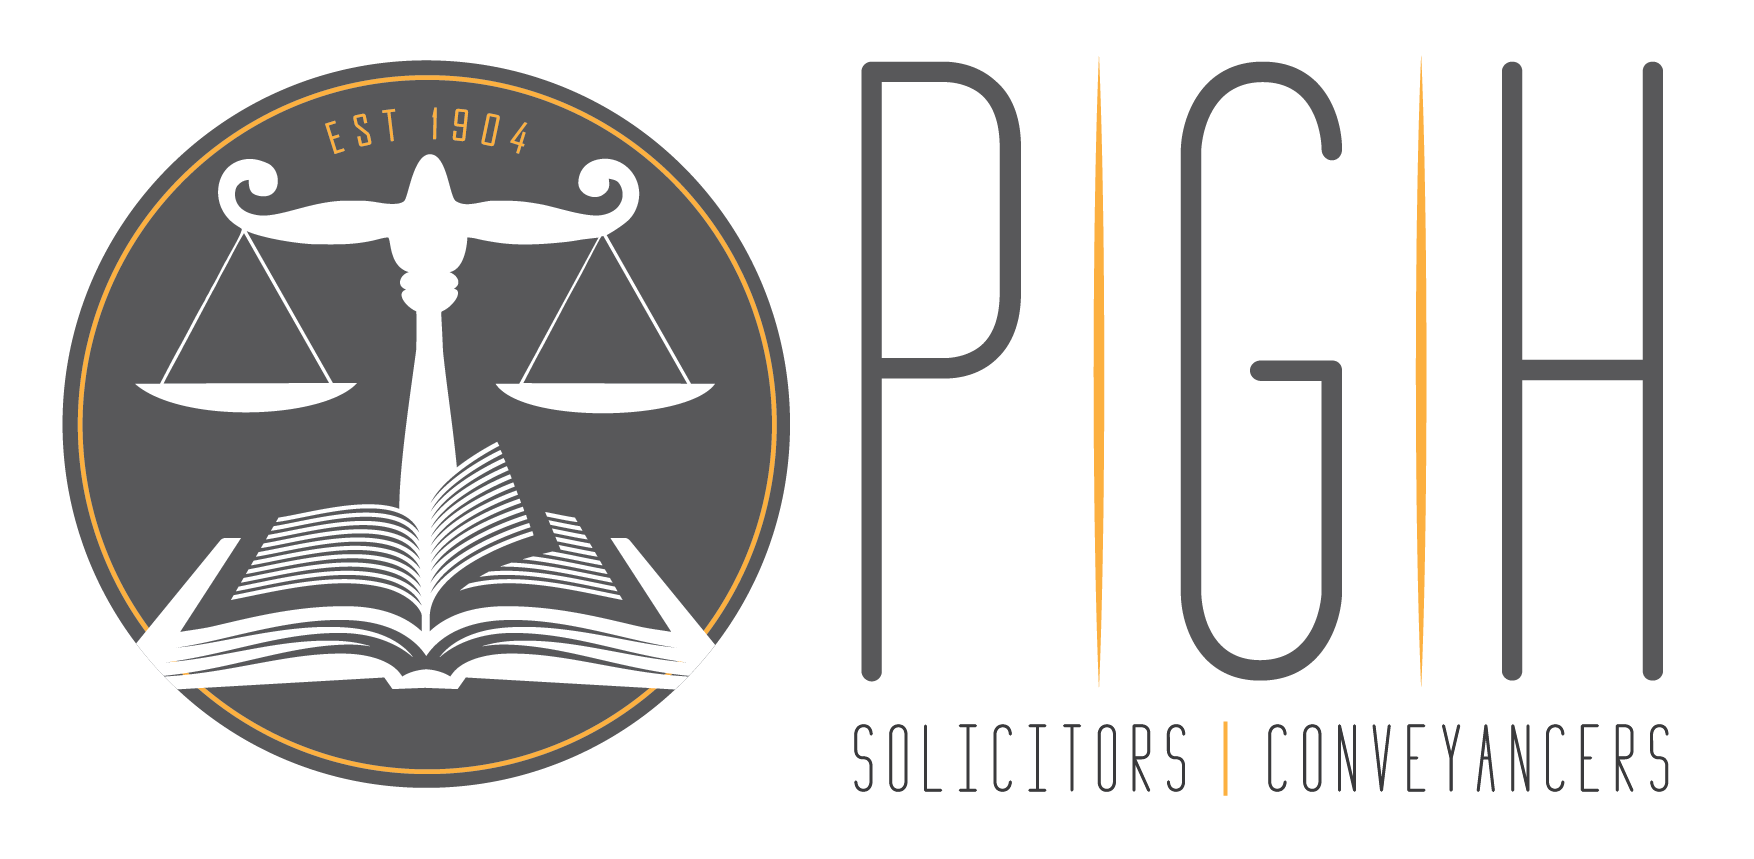 Company logo of Pollack Greening & Hampshire Solicitors and Conveyancers